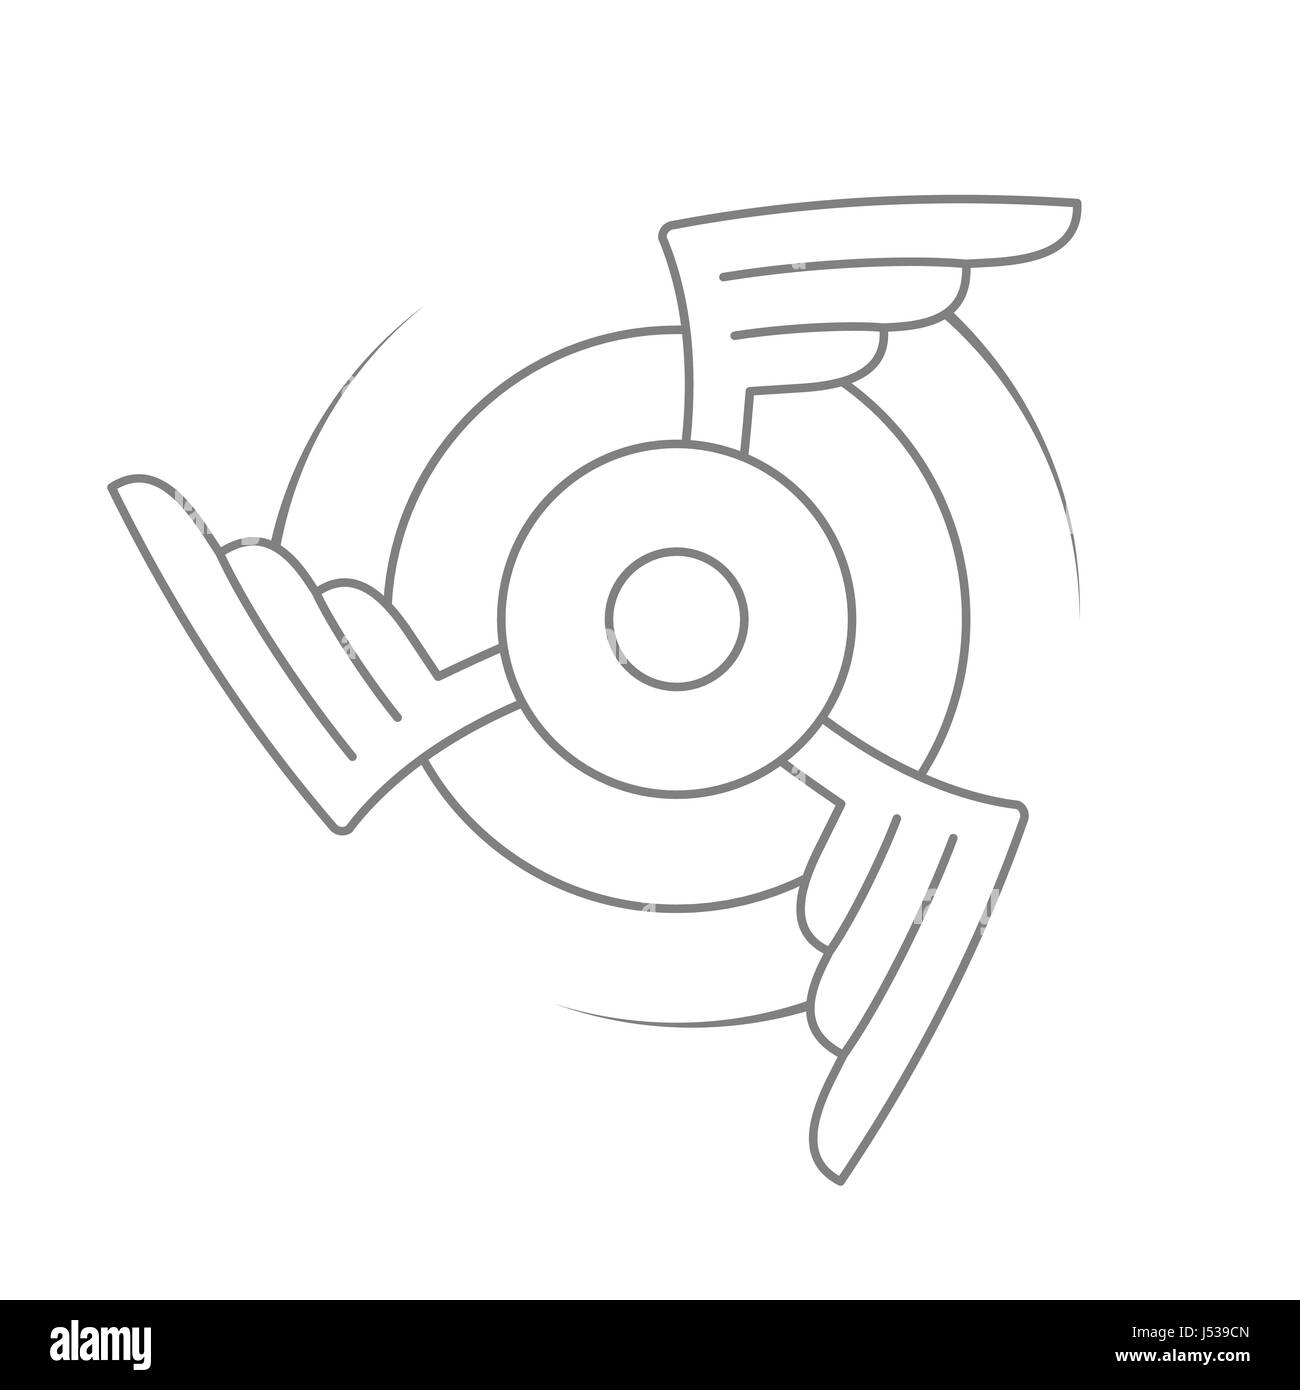 Aviation emblem, badge or logo. Military or civil aviation icon. Air force symbol. Rotating wings design. Vector - Stock Image